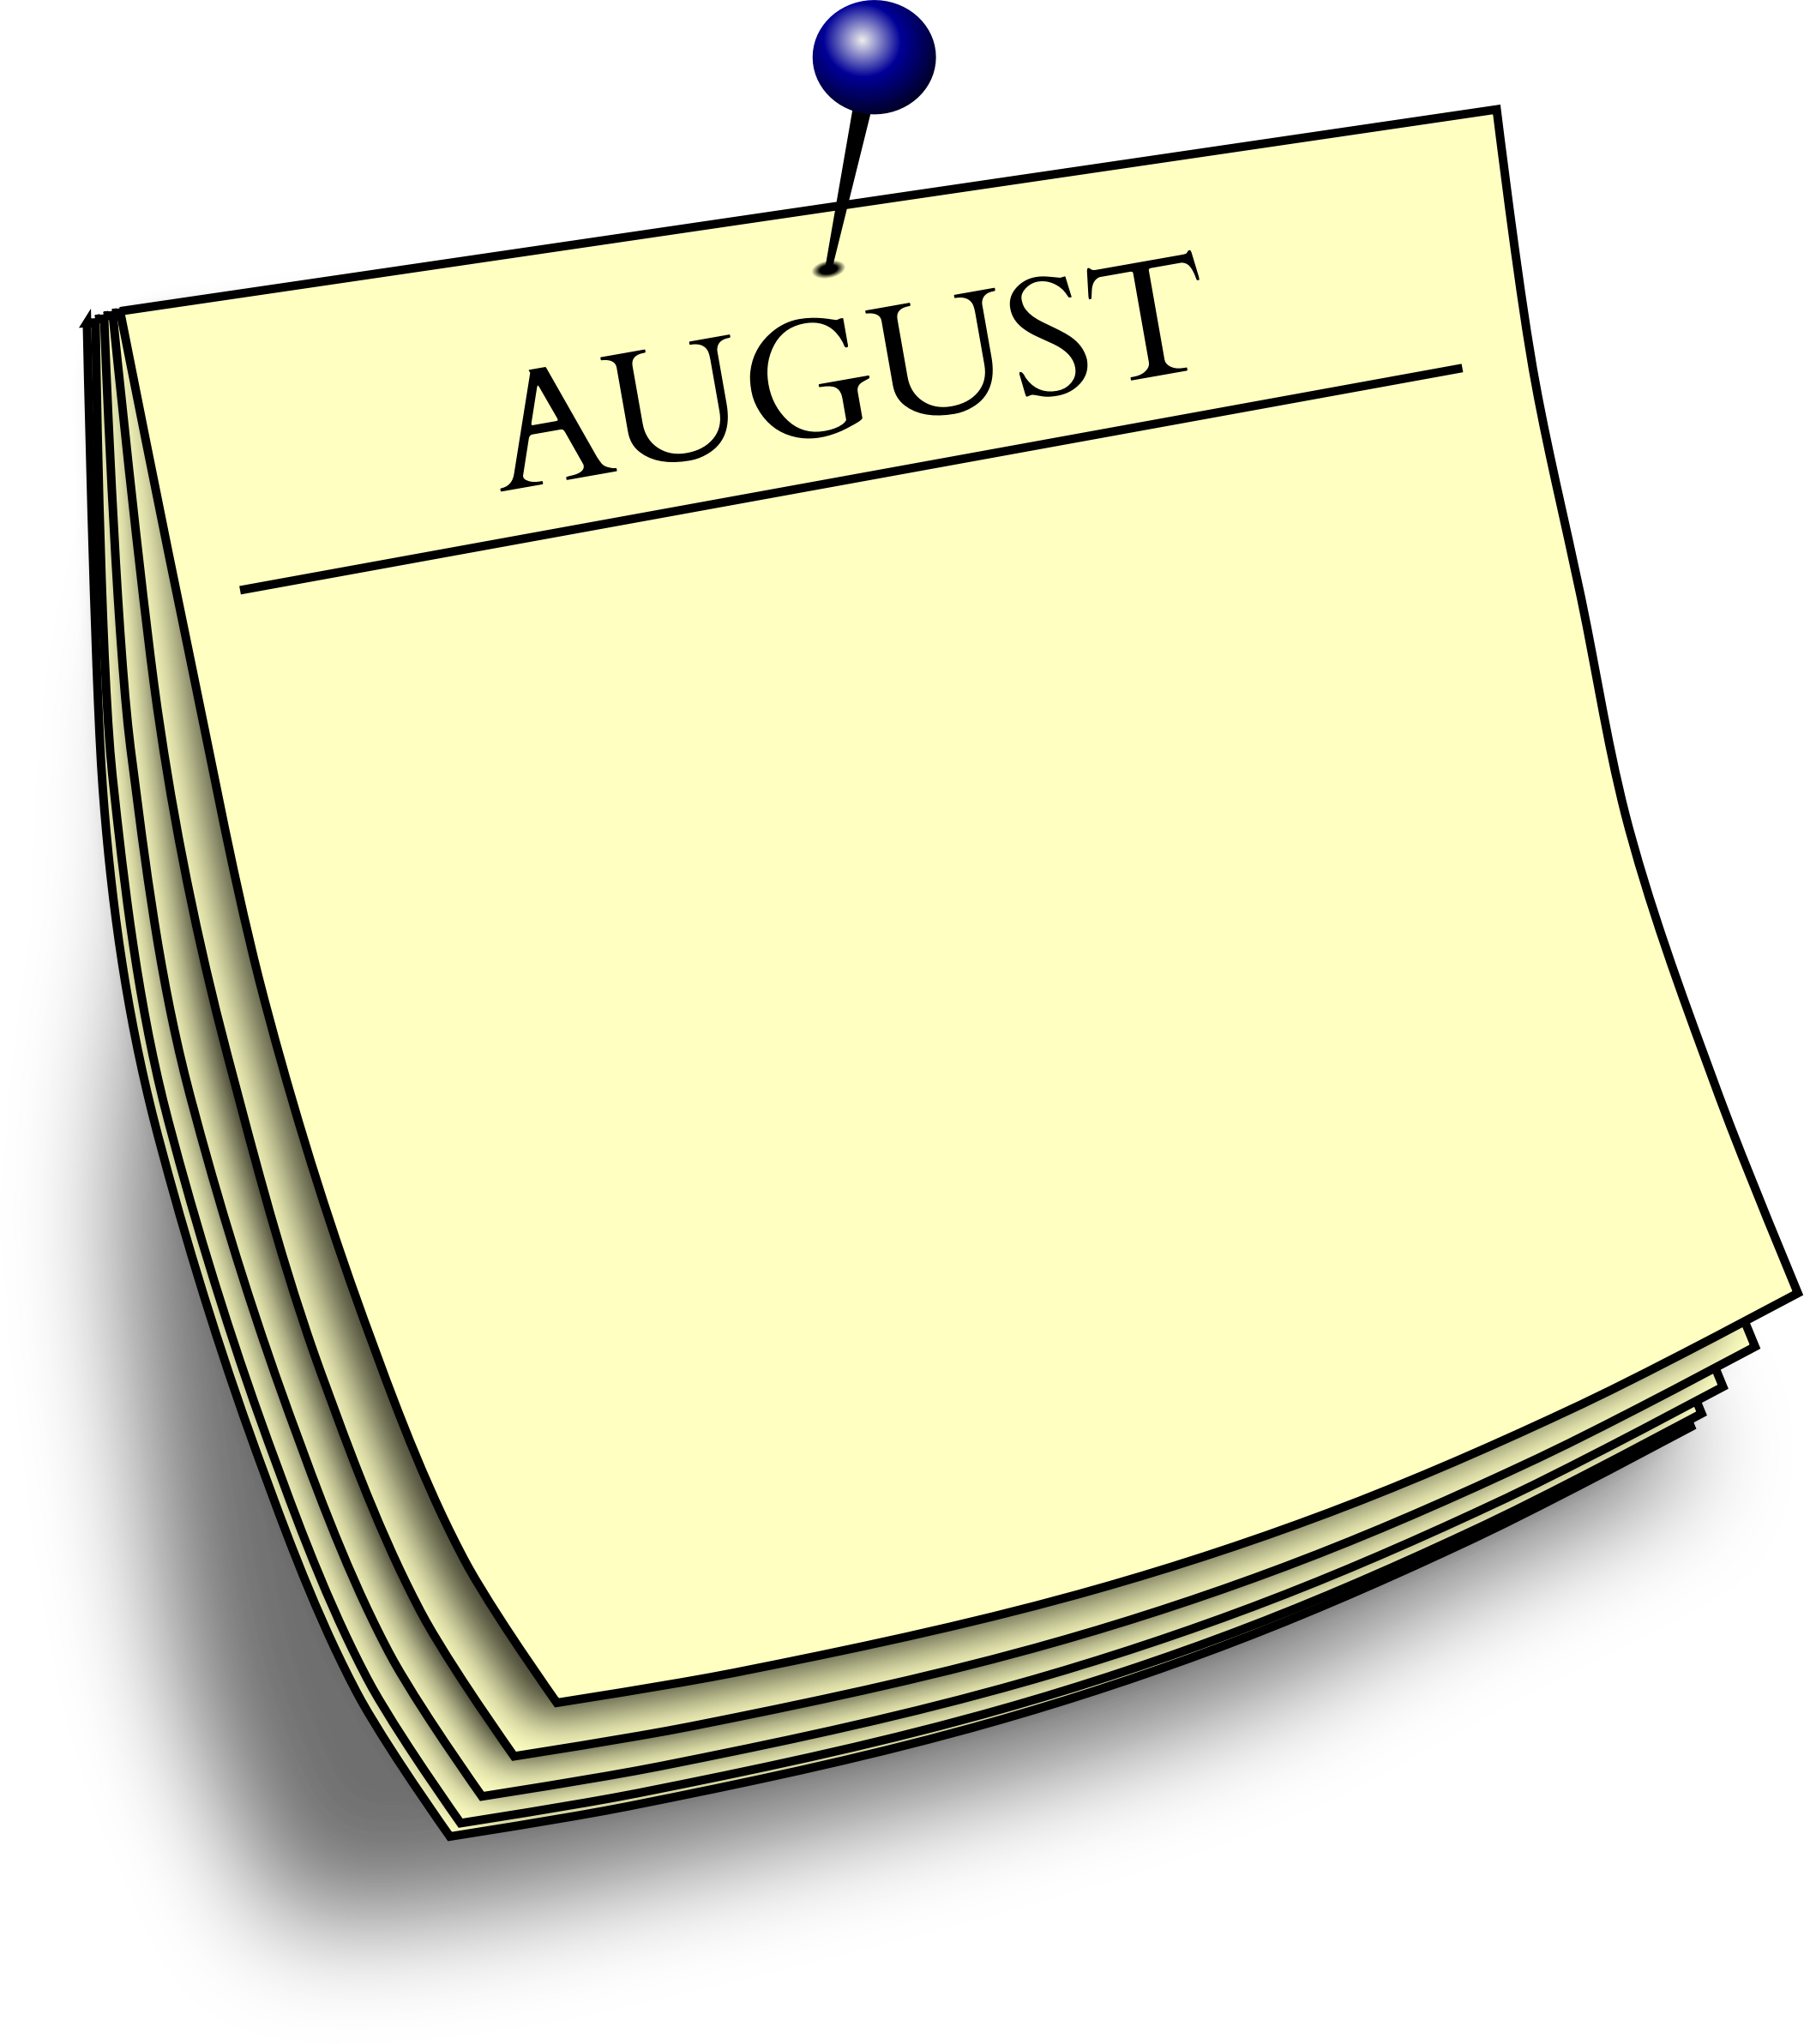 Monthly note - August by Firkin